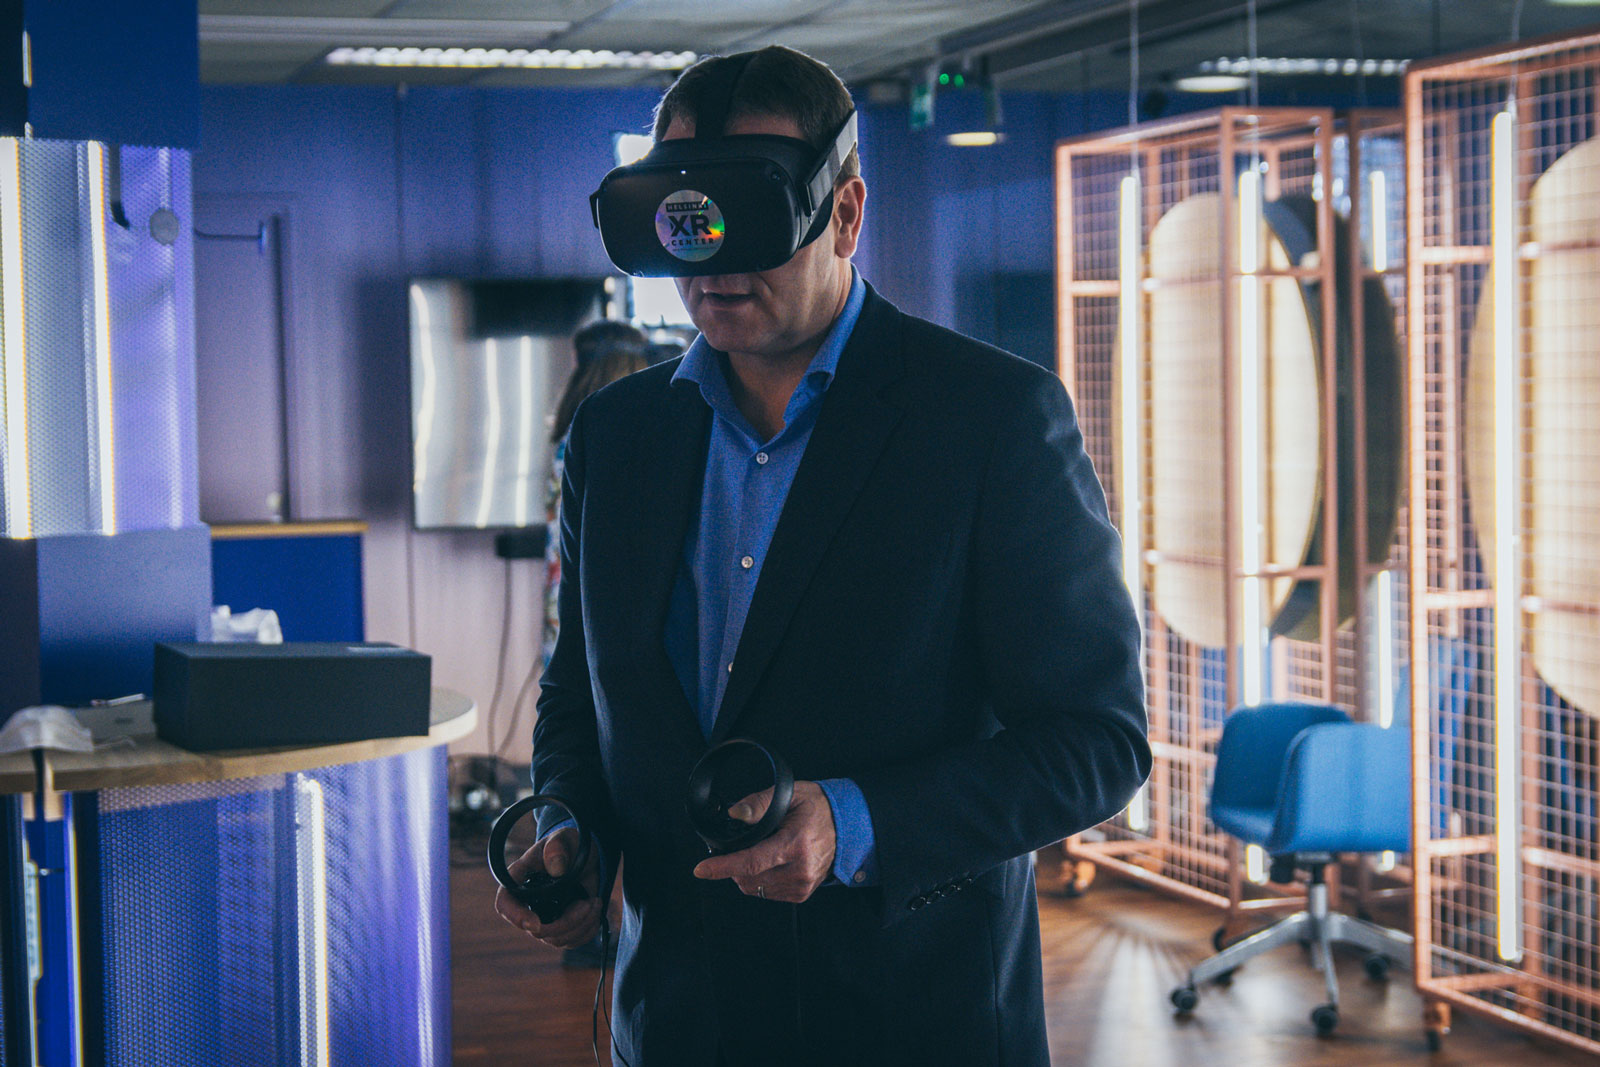 Jan Vapaavuori, Mayor of Helsinki, is standing with a VR headset and controllers.